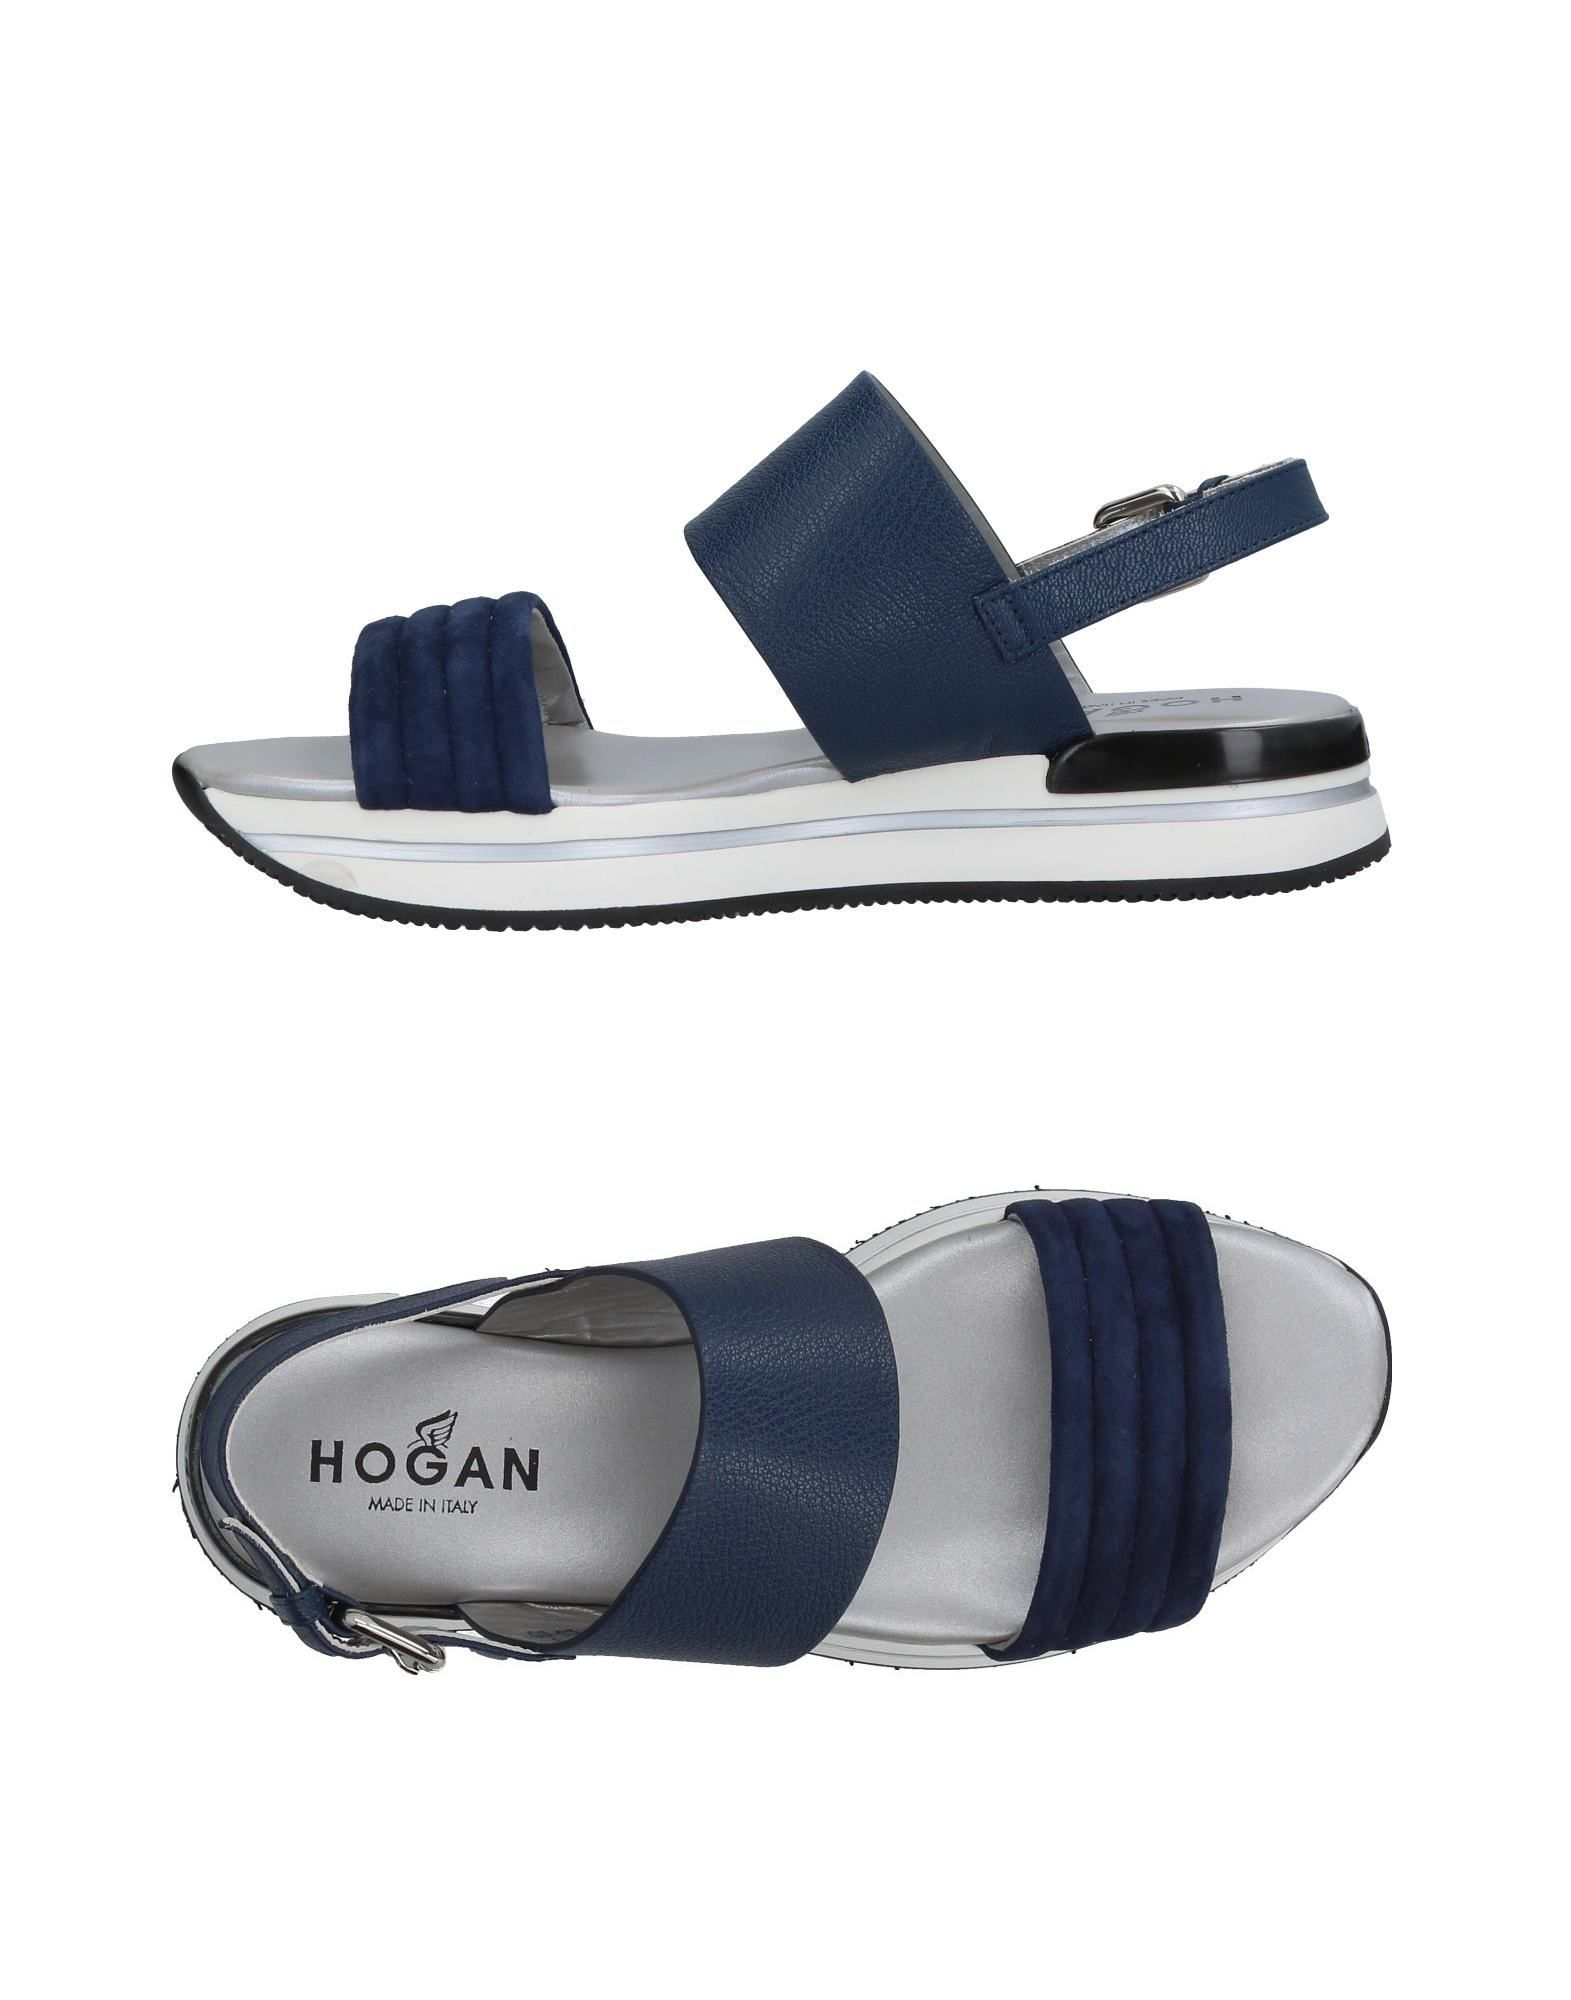 Hogan Sandals - Women Hogan Sandals online  on  online Australia - 11392221FR 6697fa